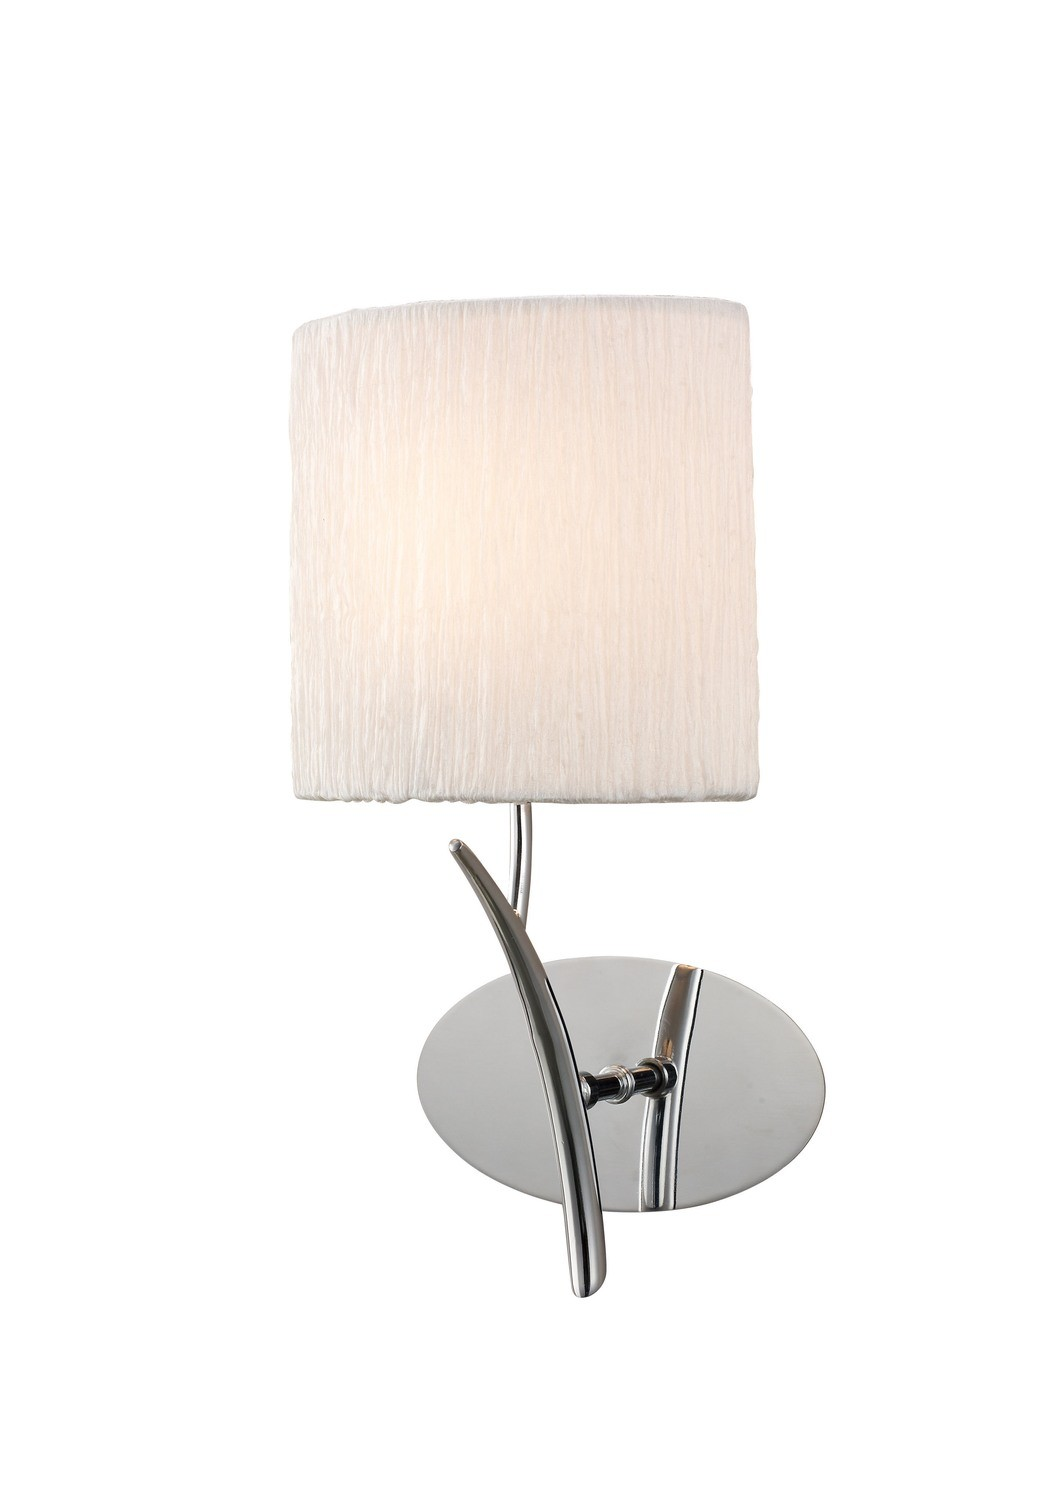 Eve Wall Lamp Switched 1 Light E27, Polished Chrome With White Oval Shade